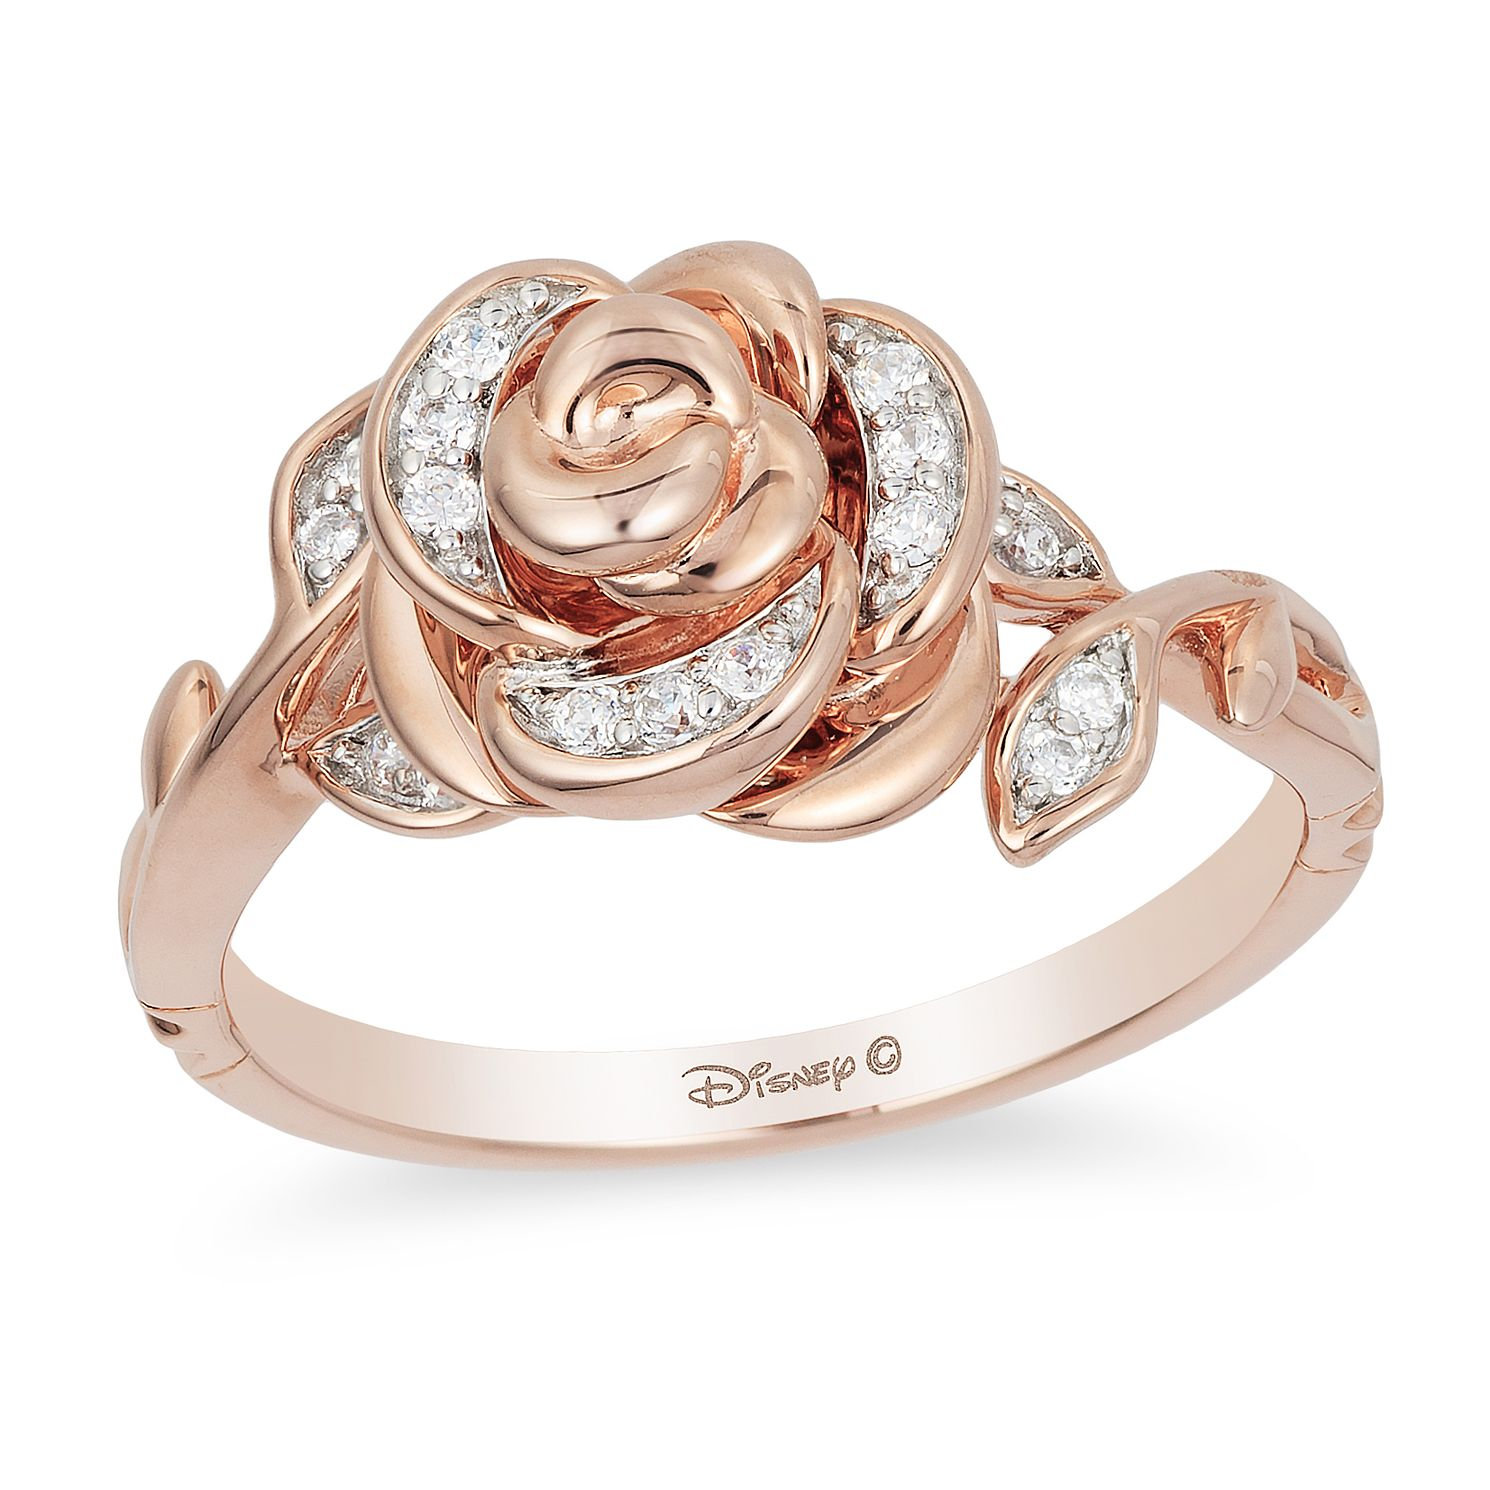 Enchanted Disney Fine Jewelry Rose Gold Diamond Belle Ring - Product number 5080681